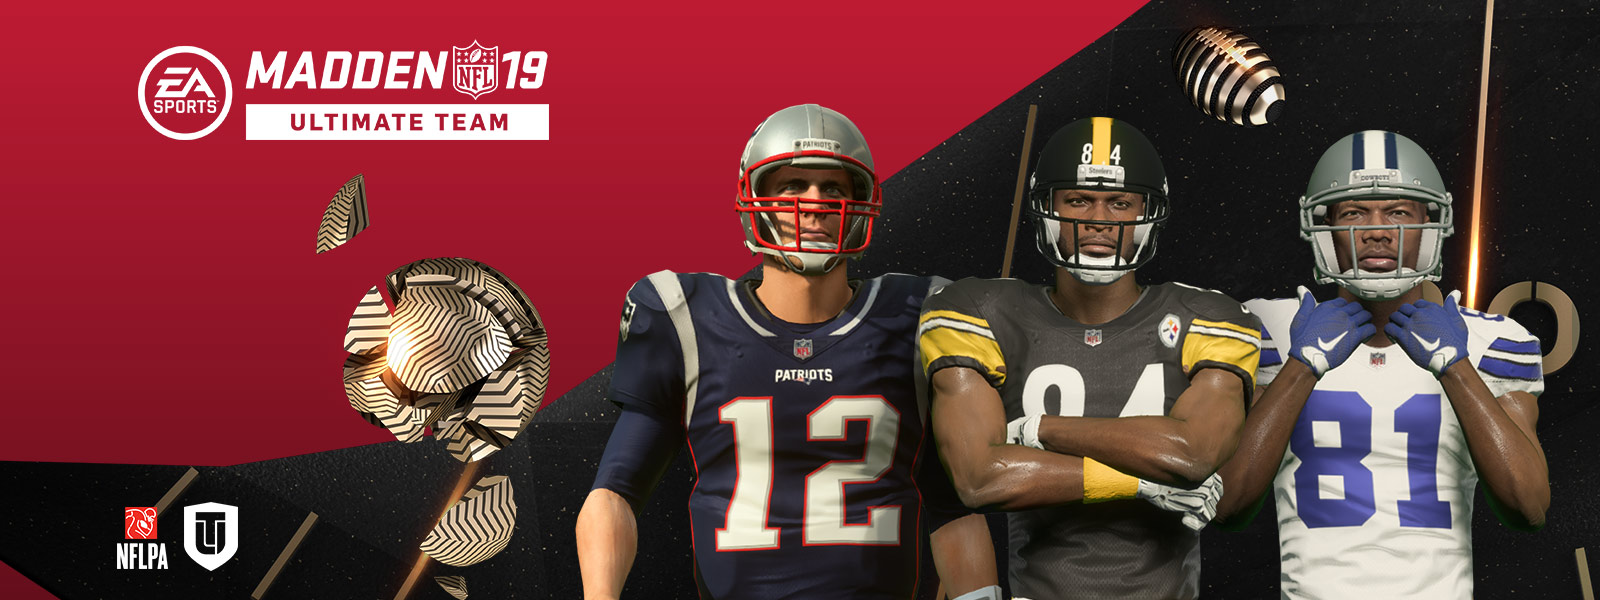 Madden NFL 19 Ultimate Team, vista frontal de Tom Brady, Antonio Brown y Terrell Owens